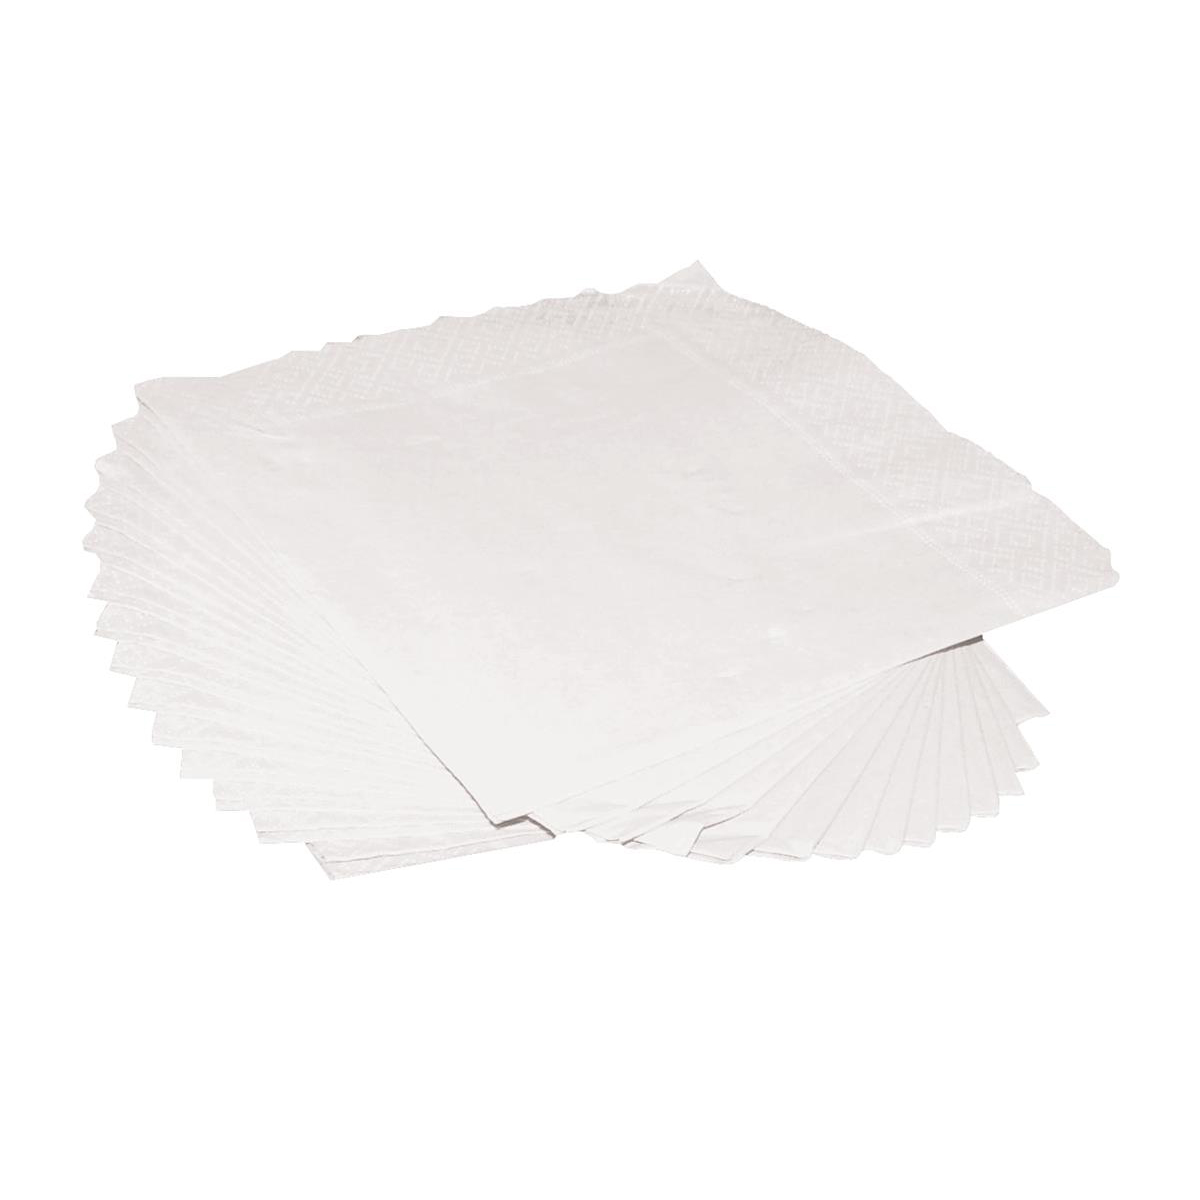 Serviettes / Napkins Napkin 2-Ply 250x250mm White Pack 250